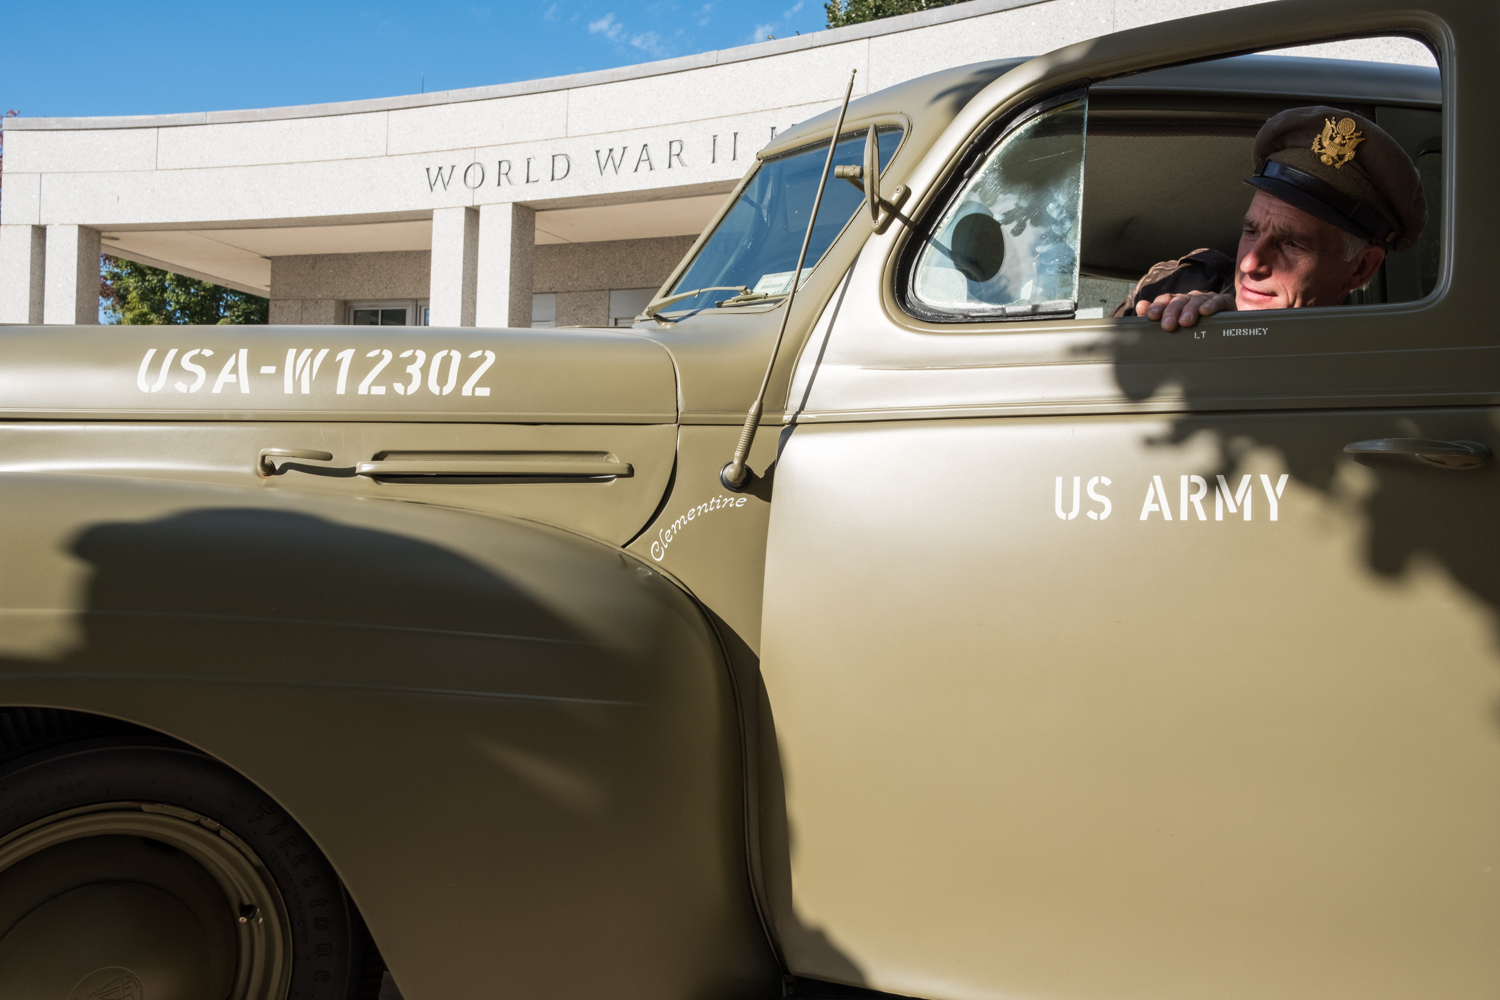 Chris Gabers, a war re-enactor with the Allied Airmen's Preservation Society, parks a US Army vehicle near the World War II Memorial in Washington, D.C. during an Honor Flight event. Honor Flight is when veterans from around America visit the memorials on The National Mall.